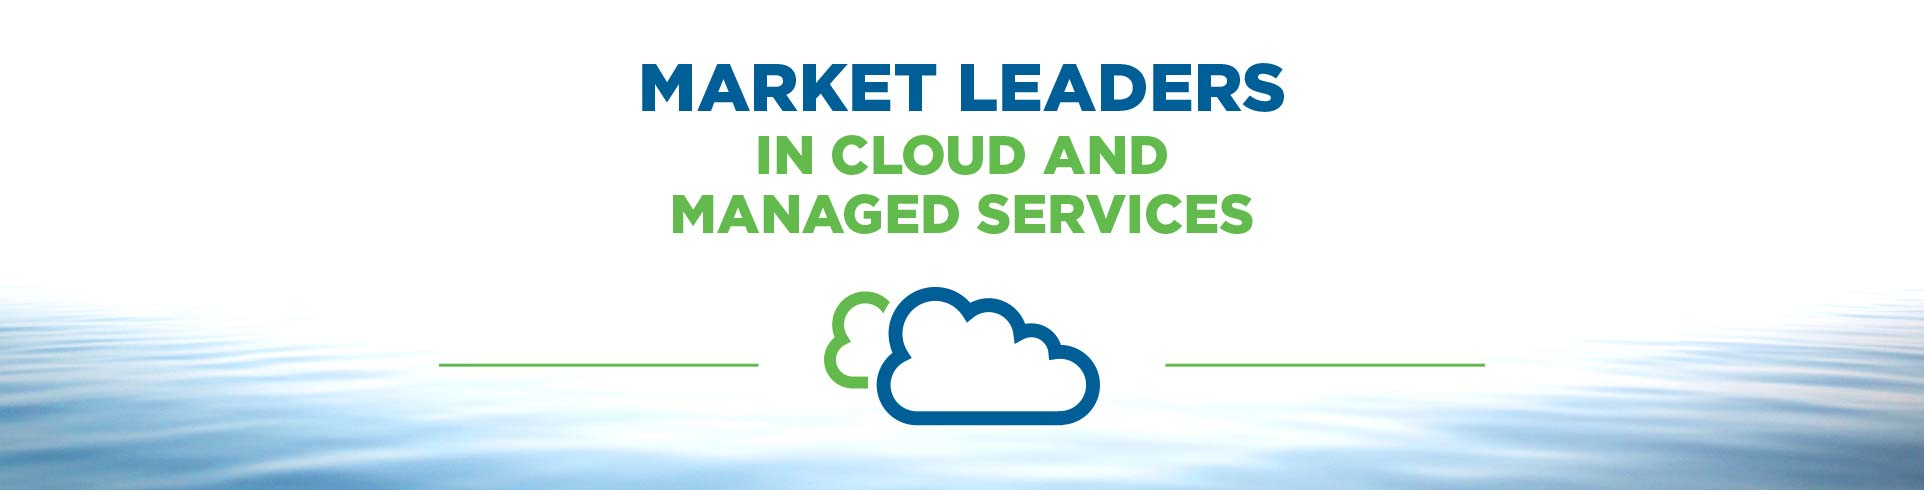 Market Leaders In Cloud And Managed Services